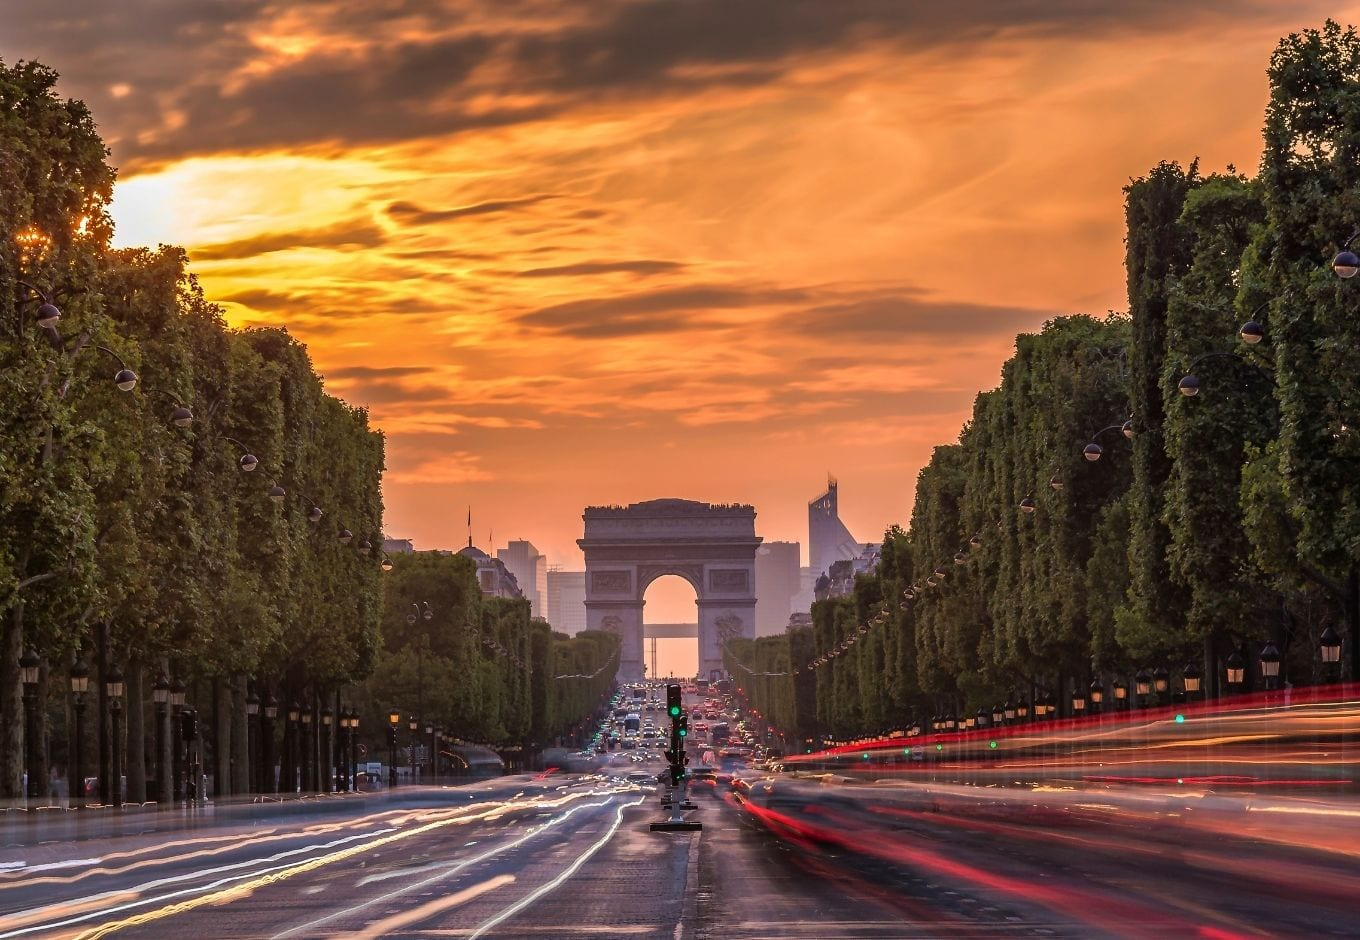 The Arc Du Triomphe at the end of the Champs Élysees Avenue at  sunset in Paris.